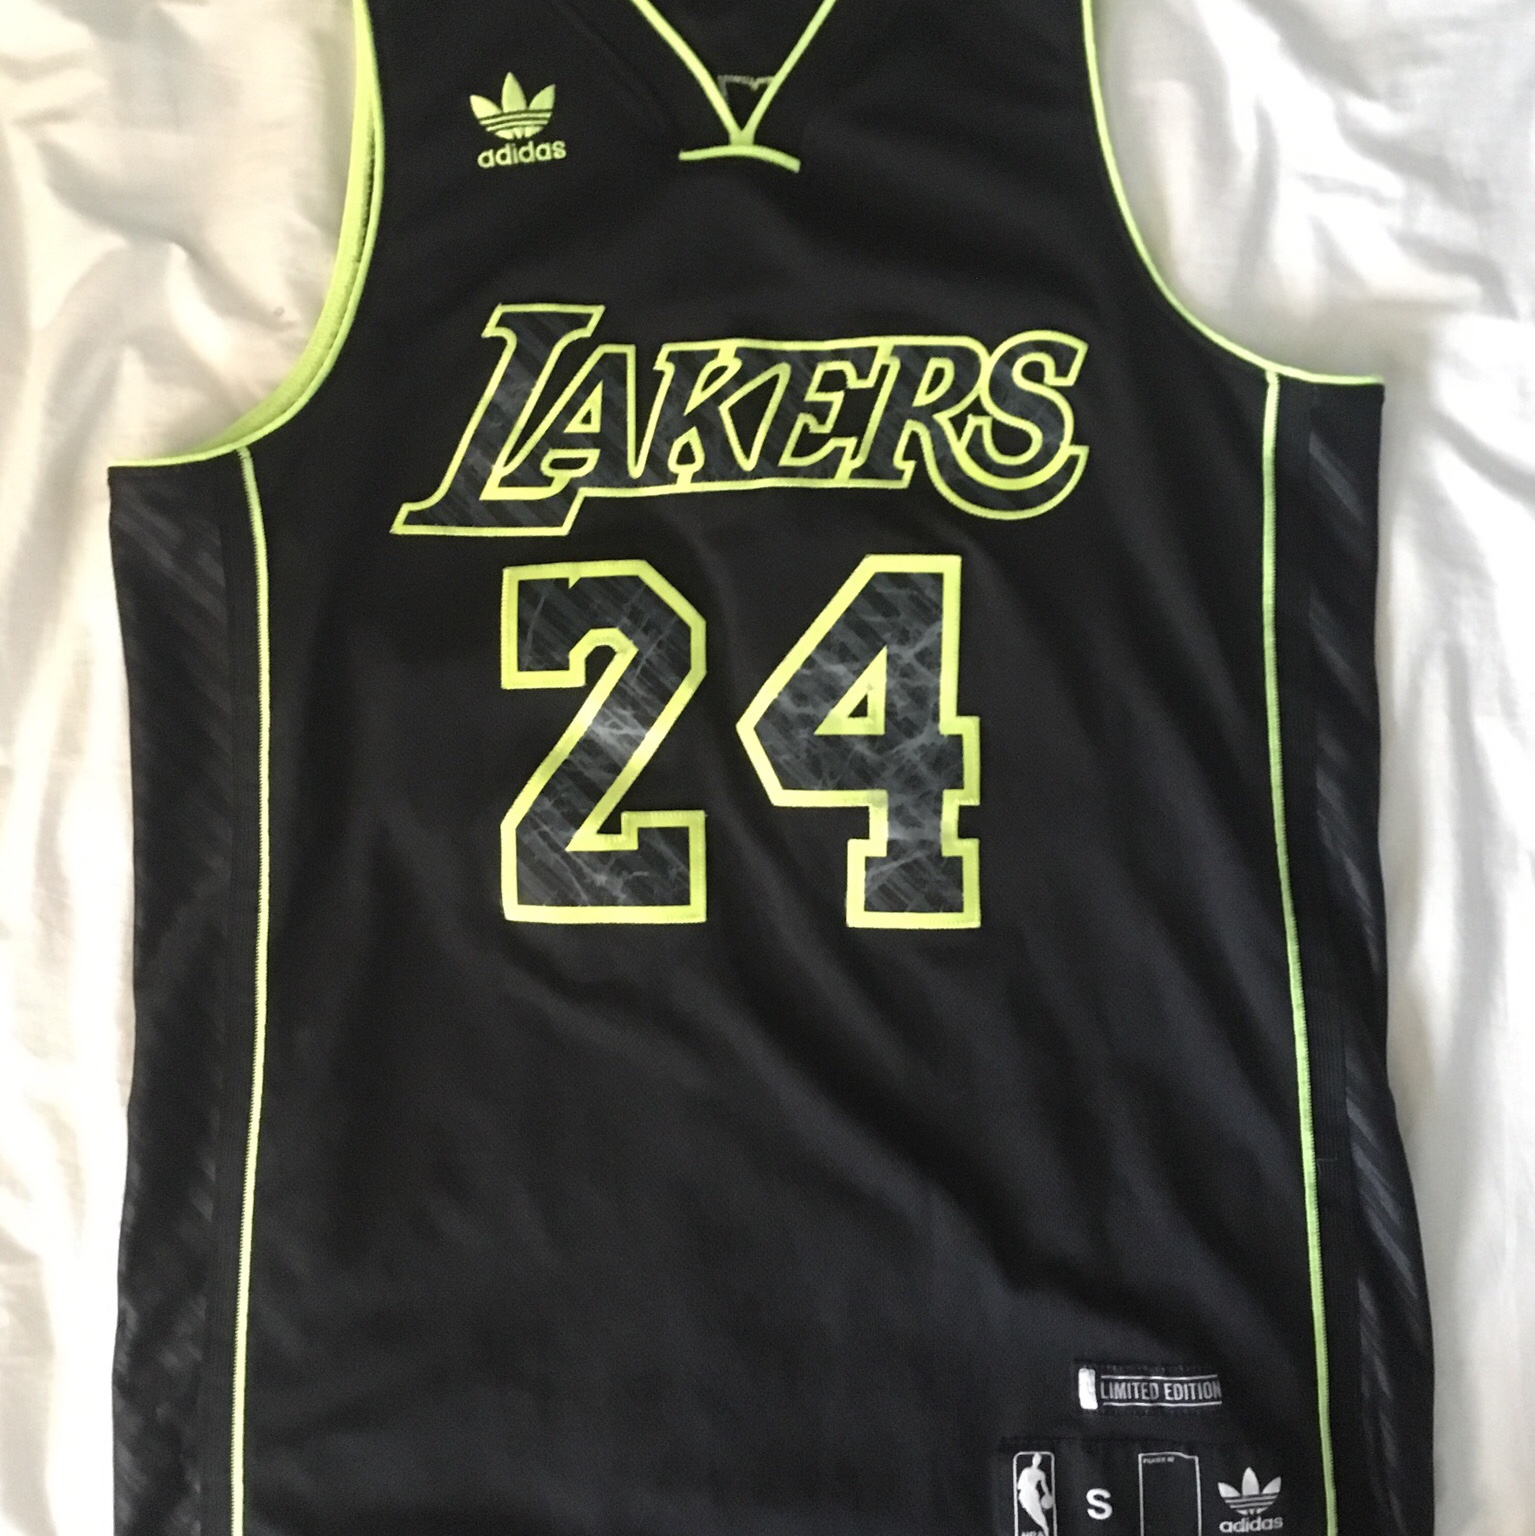 free shipping eb1b0 95c12 Kobe Bryant Volt away jersey Size S fits MED Cond... - Depop